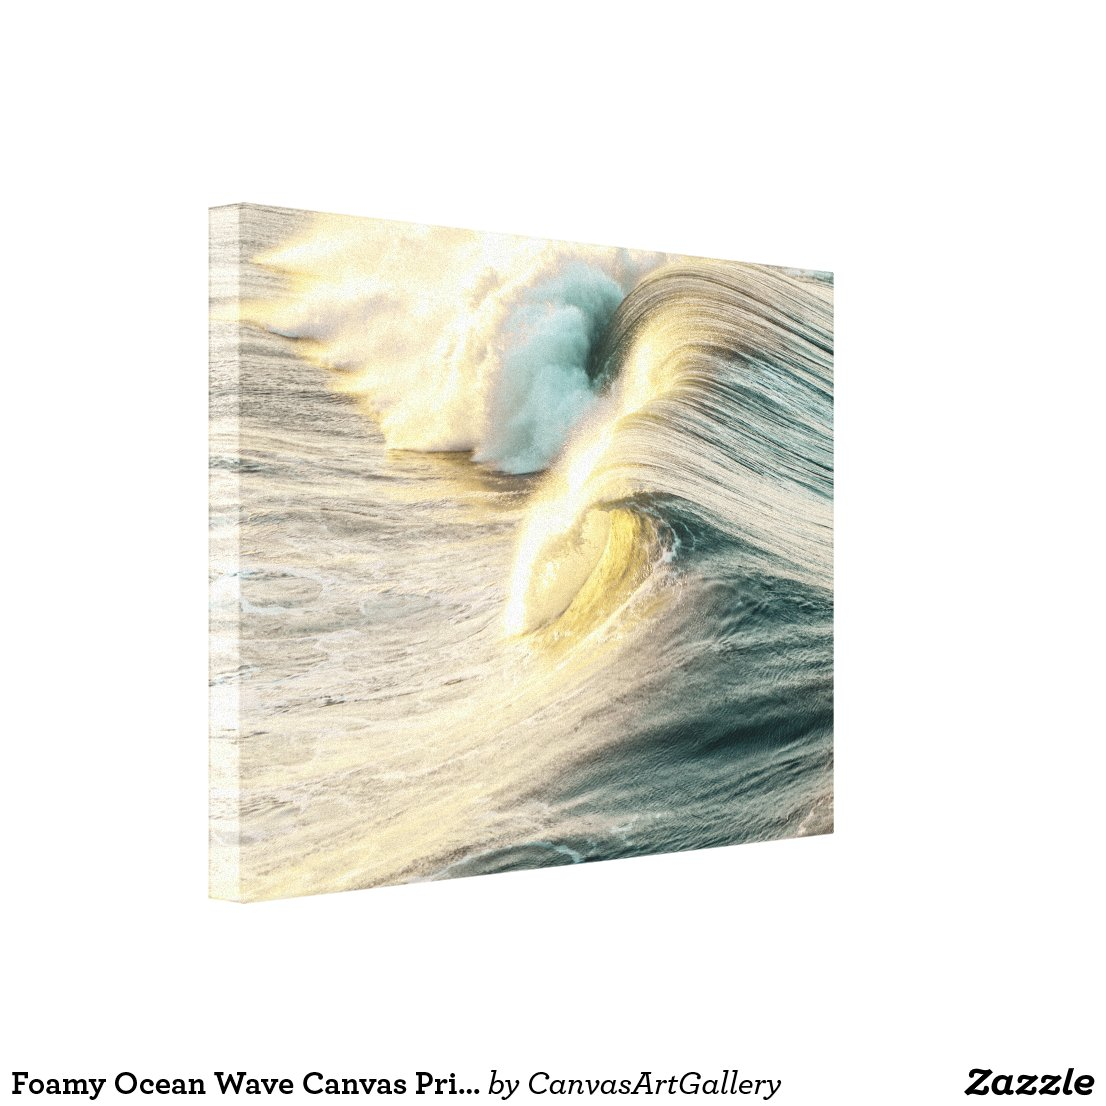 Foamy Ocean Wave